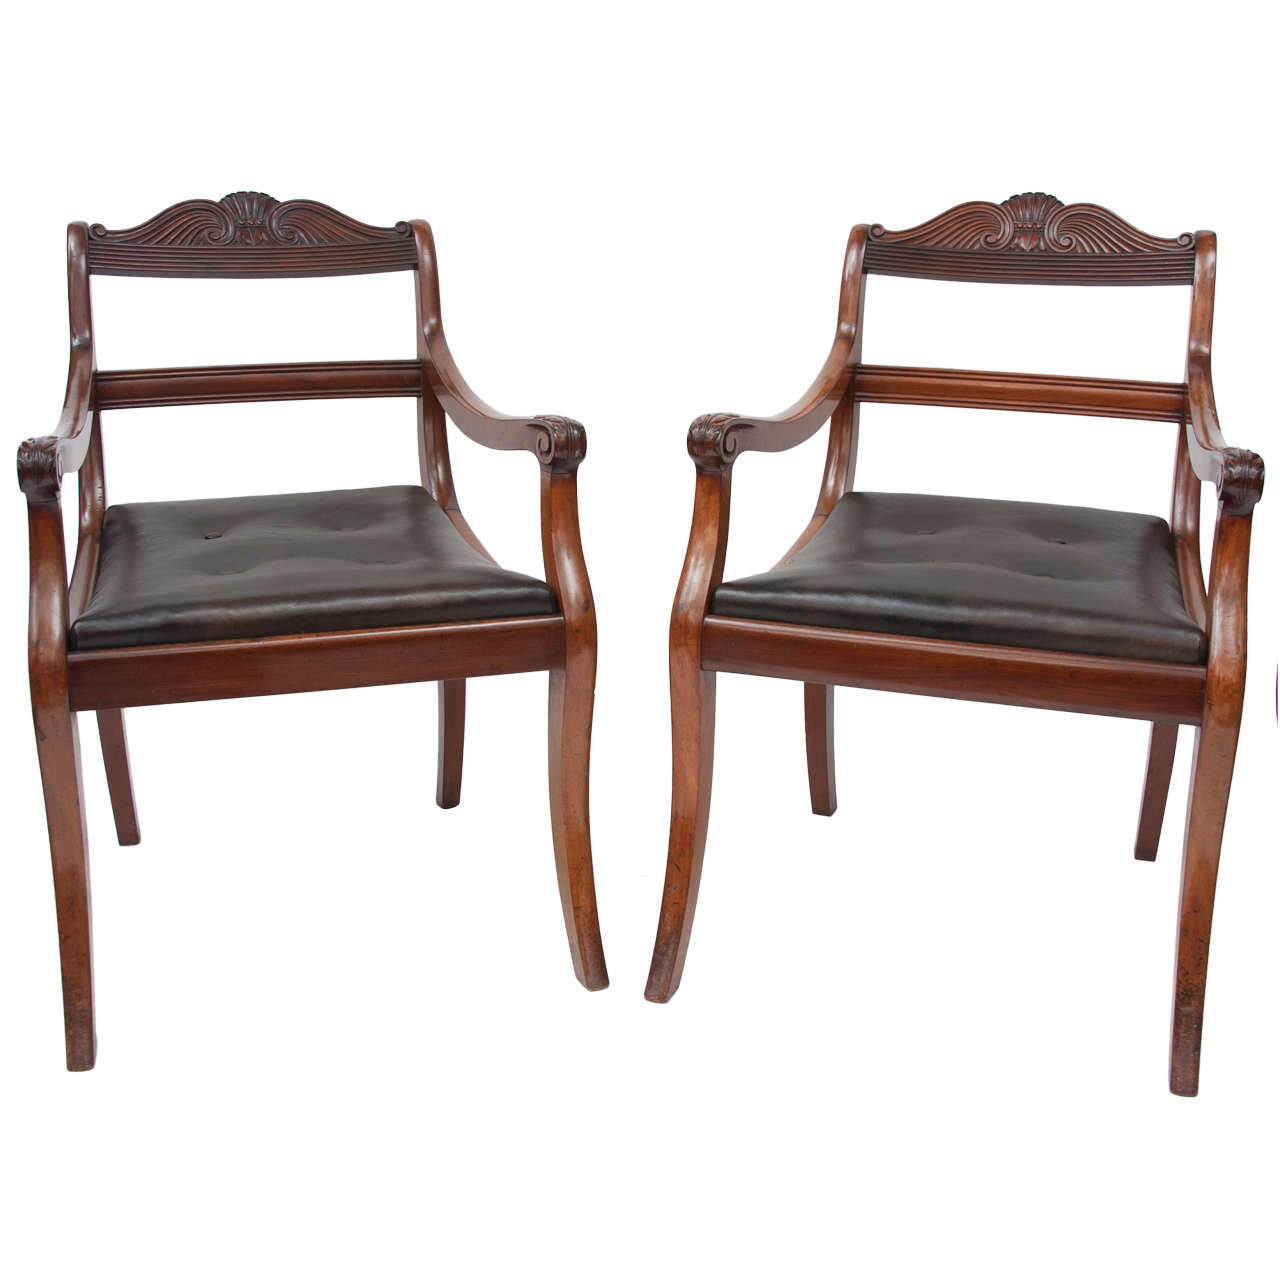 Early 19th Century Pair of Mahogany Open Armchairs